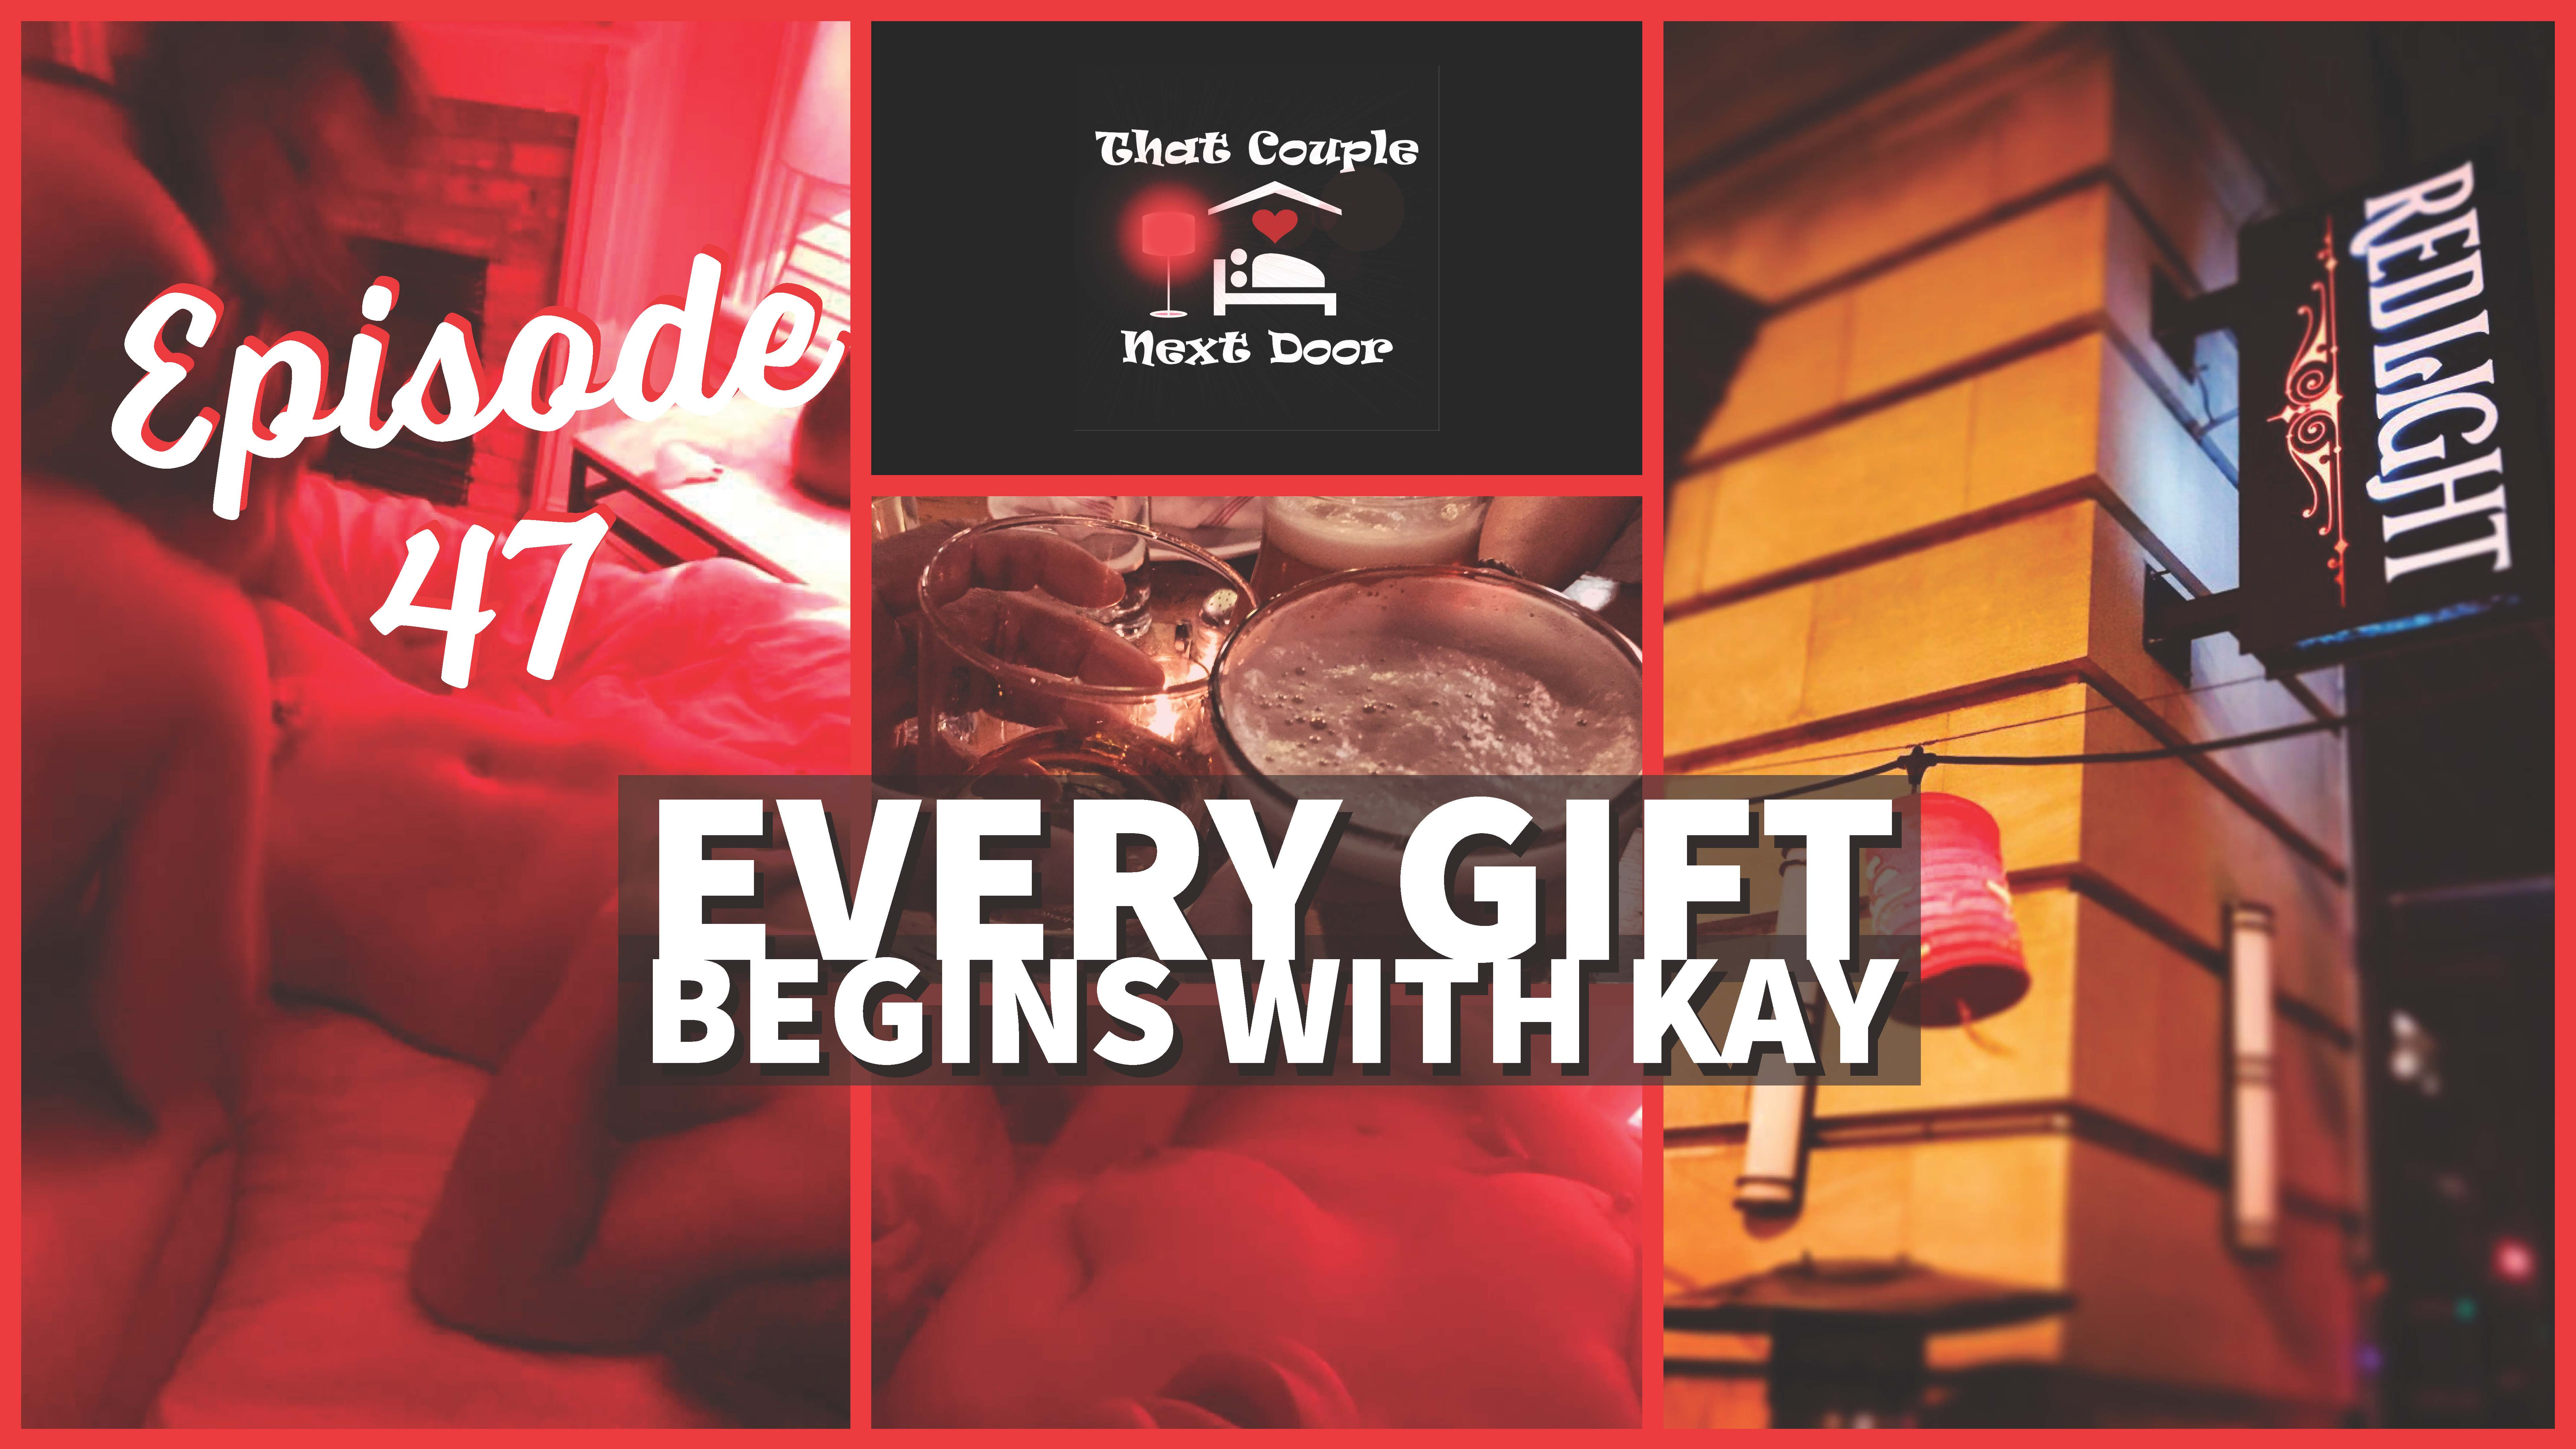 Episode 47 - Every Gift Begins with Kay